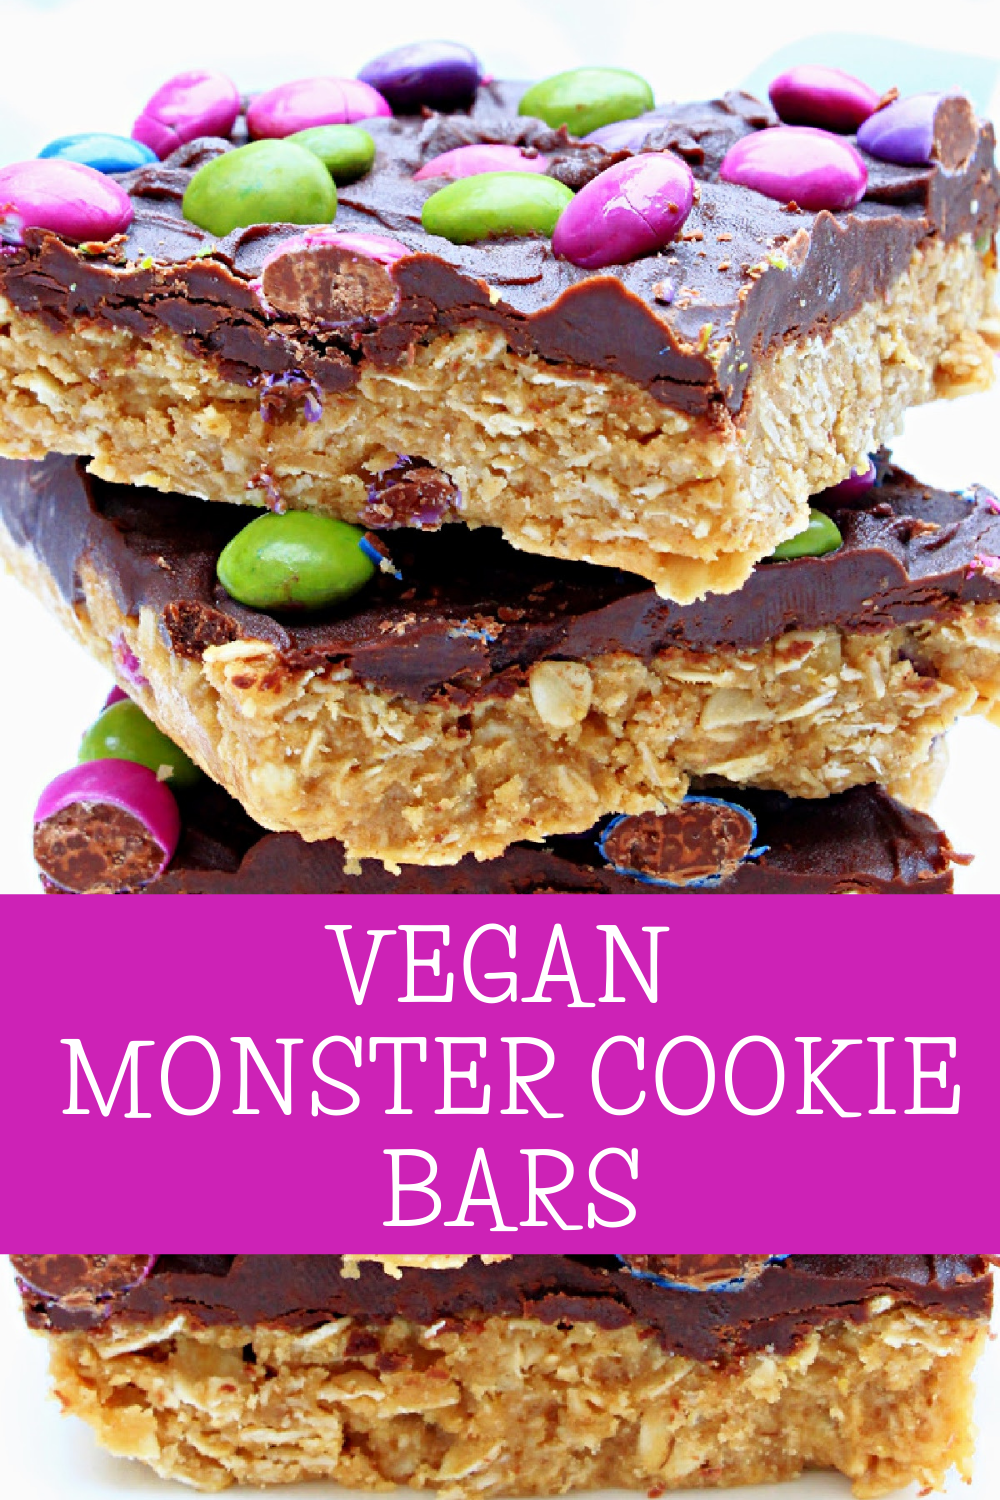 Vegan Monster Cookie Bars ~ Peanut butter and oatmeal cookie dough smothered in chocolate and studded with colorful candies is an easy, no-bake dessert treat that is frightfully delicious! via @thiswifecooks